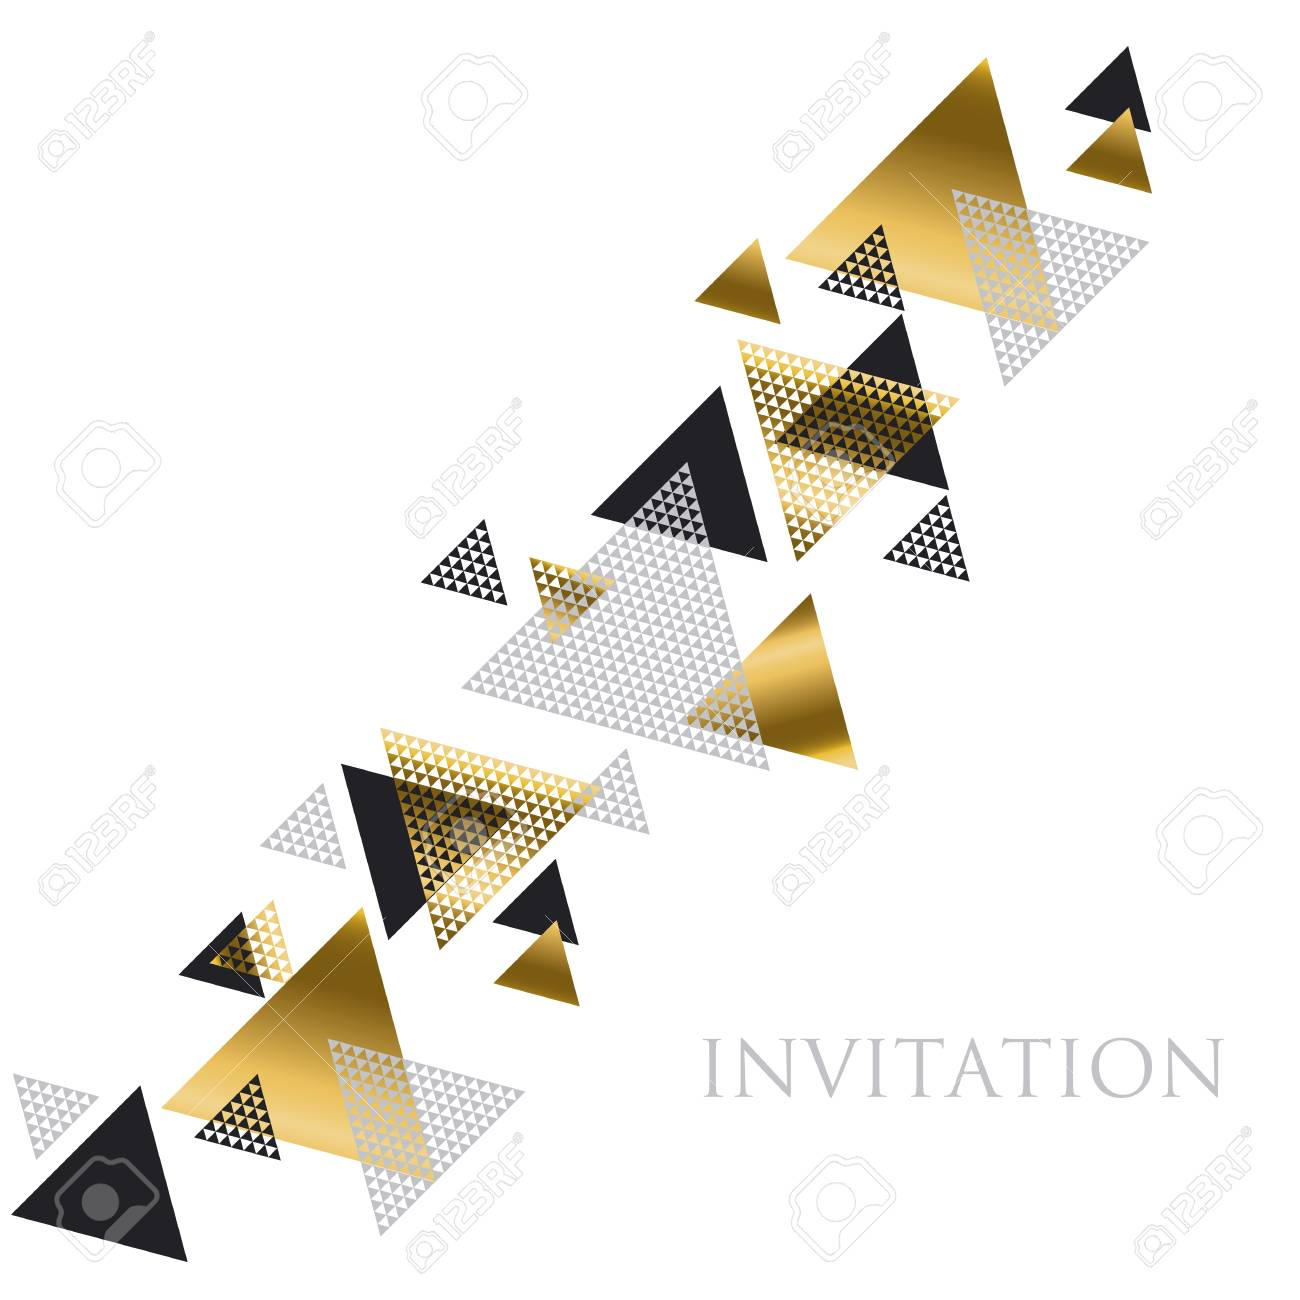 Triangle geometry abstract vector illustration for header banco de imagens triangle geometry abstract vector illustration for header invitation banner card concept gold luxury new retro style dynamic pattern stopboris Images